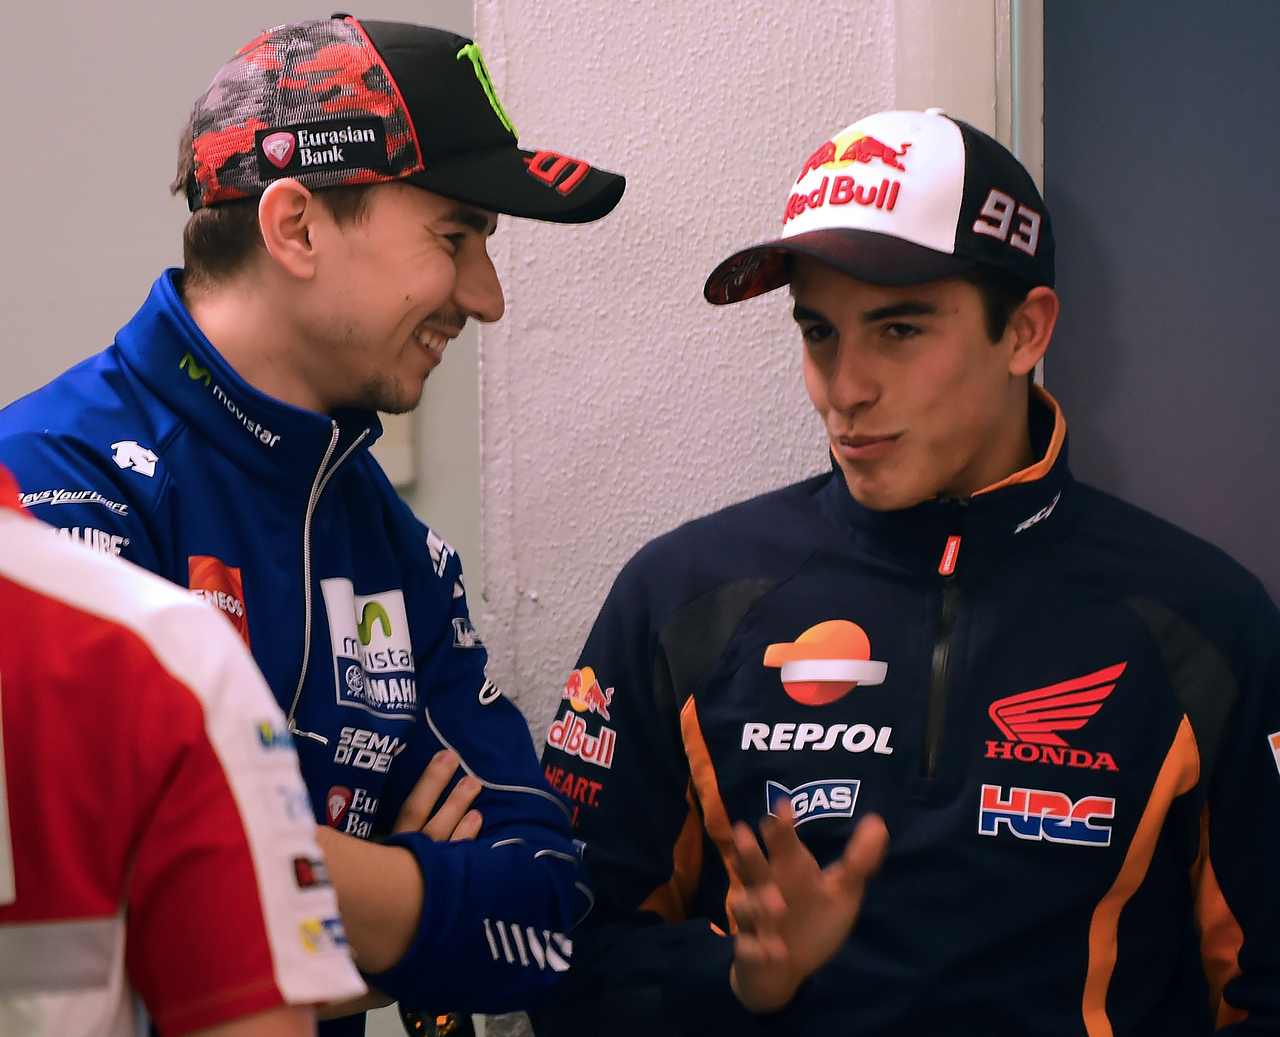 Repsol Honda Team's Spanish rider Marc Marquez (R) speaks with Movistar Yamaha MotoGP's Spanish rider Jorge Lorenzo (L) before a press conference during the Spanish Grand Prix at the Jerez racetrack in Jerez de la Frontera on April 21, 2016. / AFP / Cristina Quicler        (Photo credit should read CRISTINA QUICLER/AFP/Getty Images)